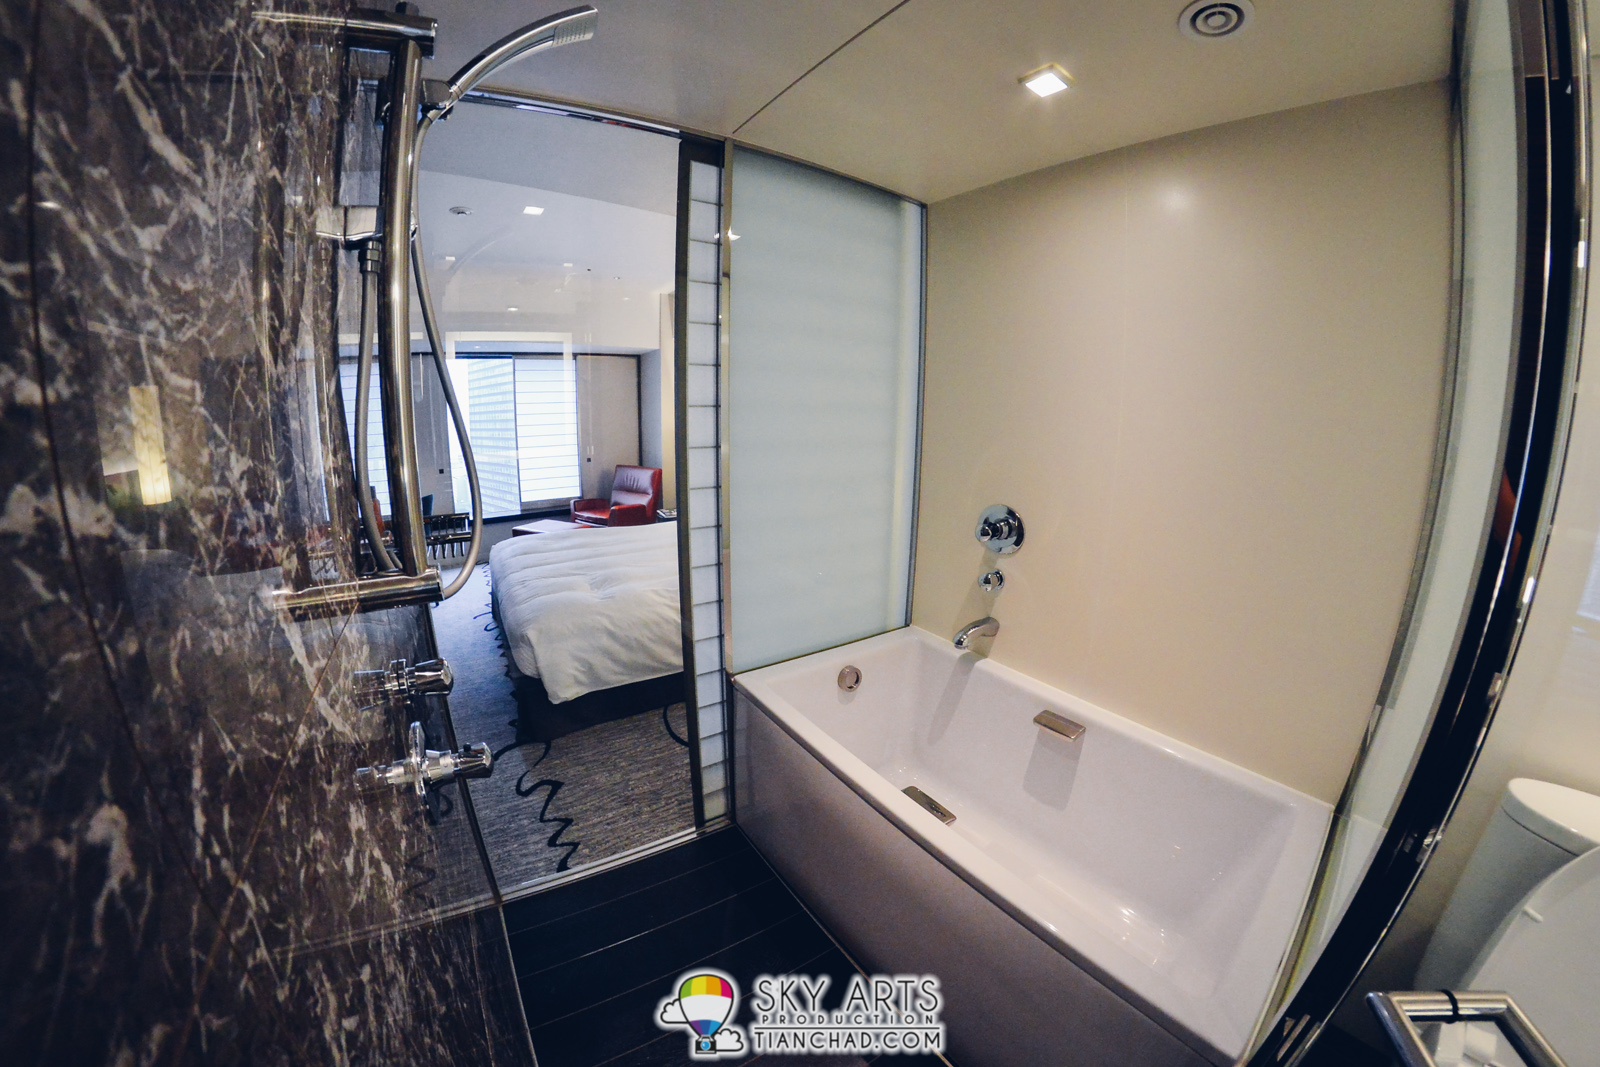 The Bath Room Has A Tub And Shower With Transparent Glass Link To